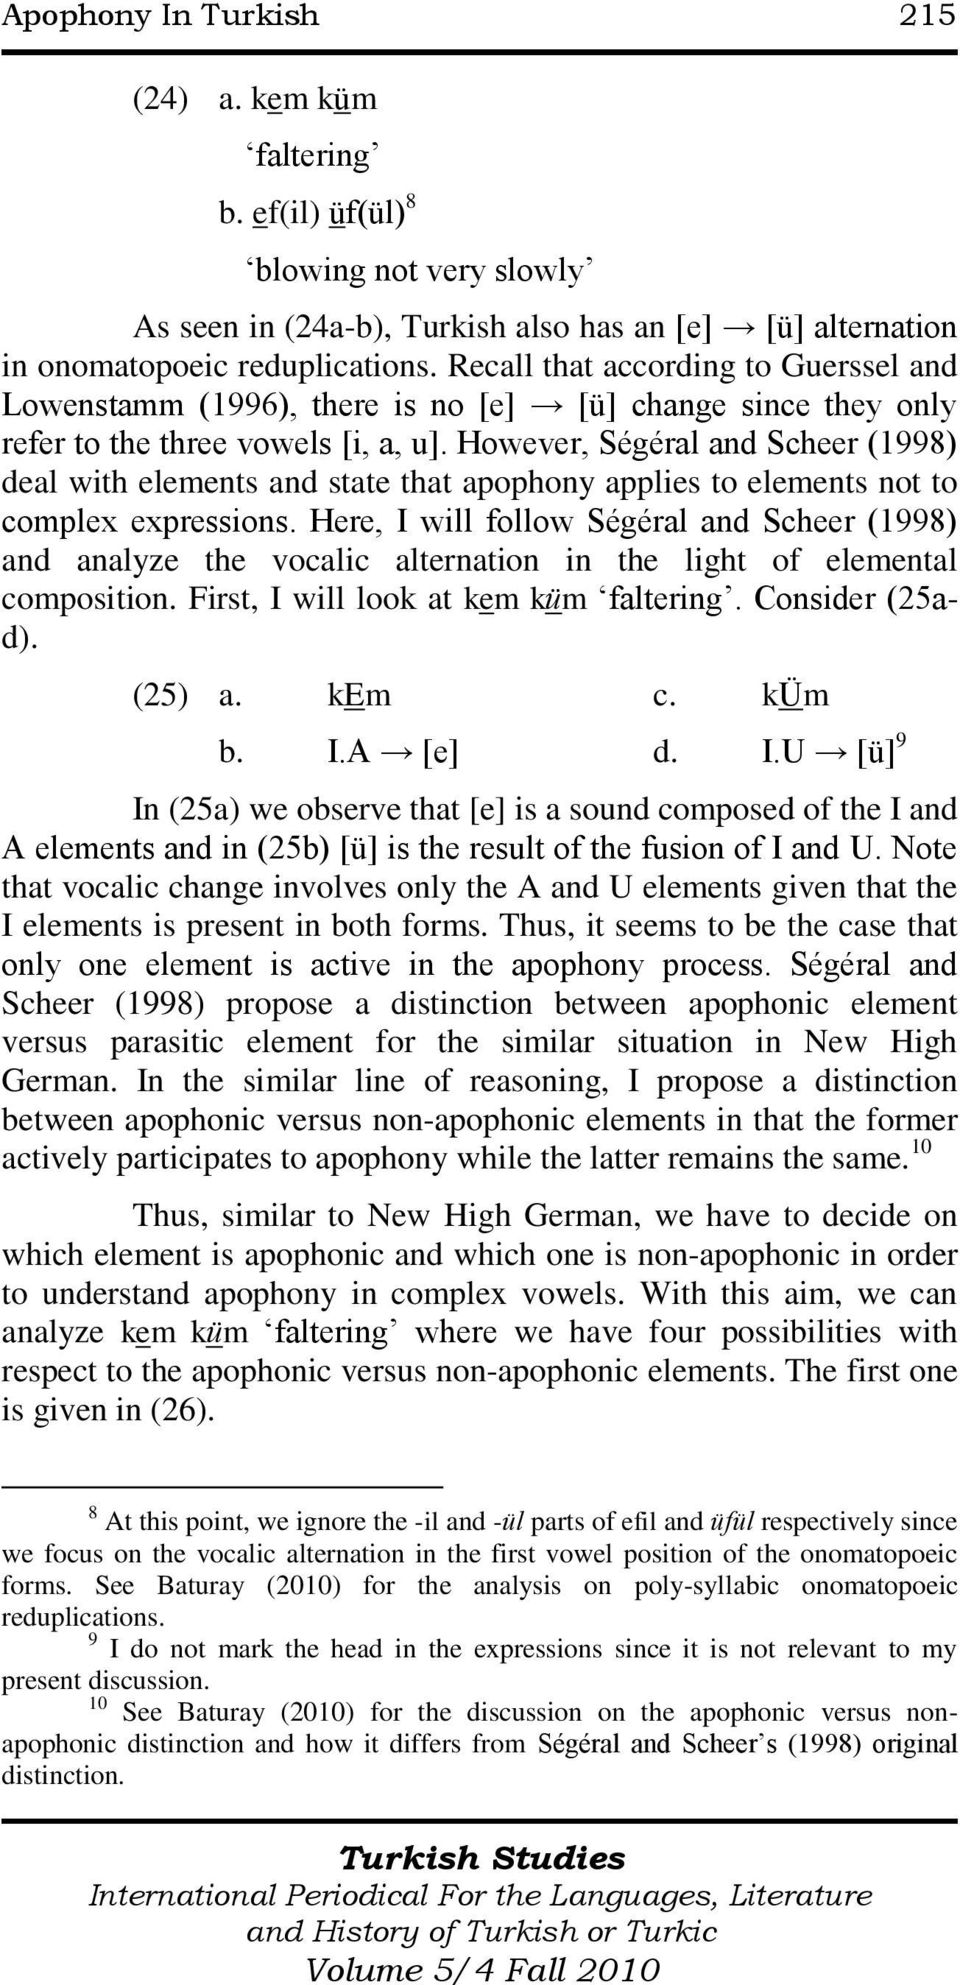 However, Ségéral and Scheer (1998) deal with elements and state that apophony applies to elements not to complex expressions.